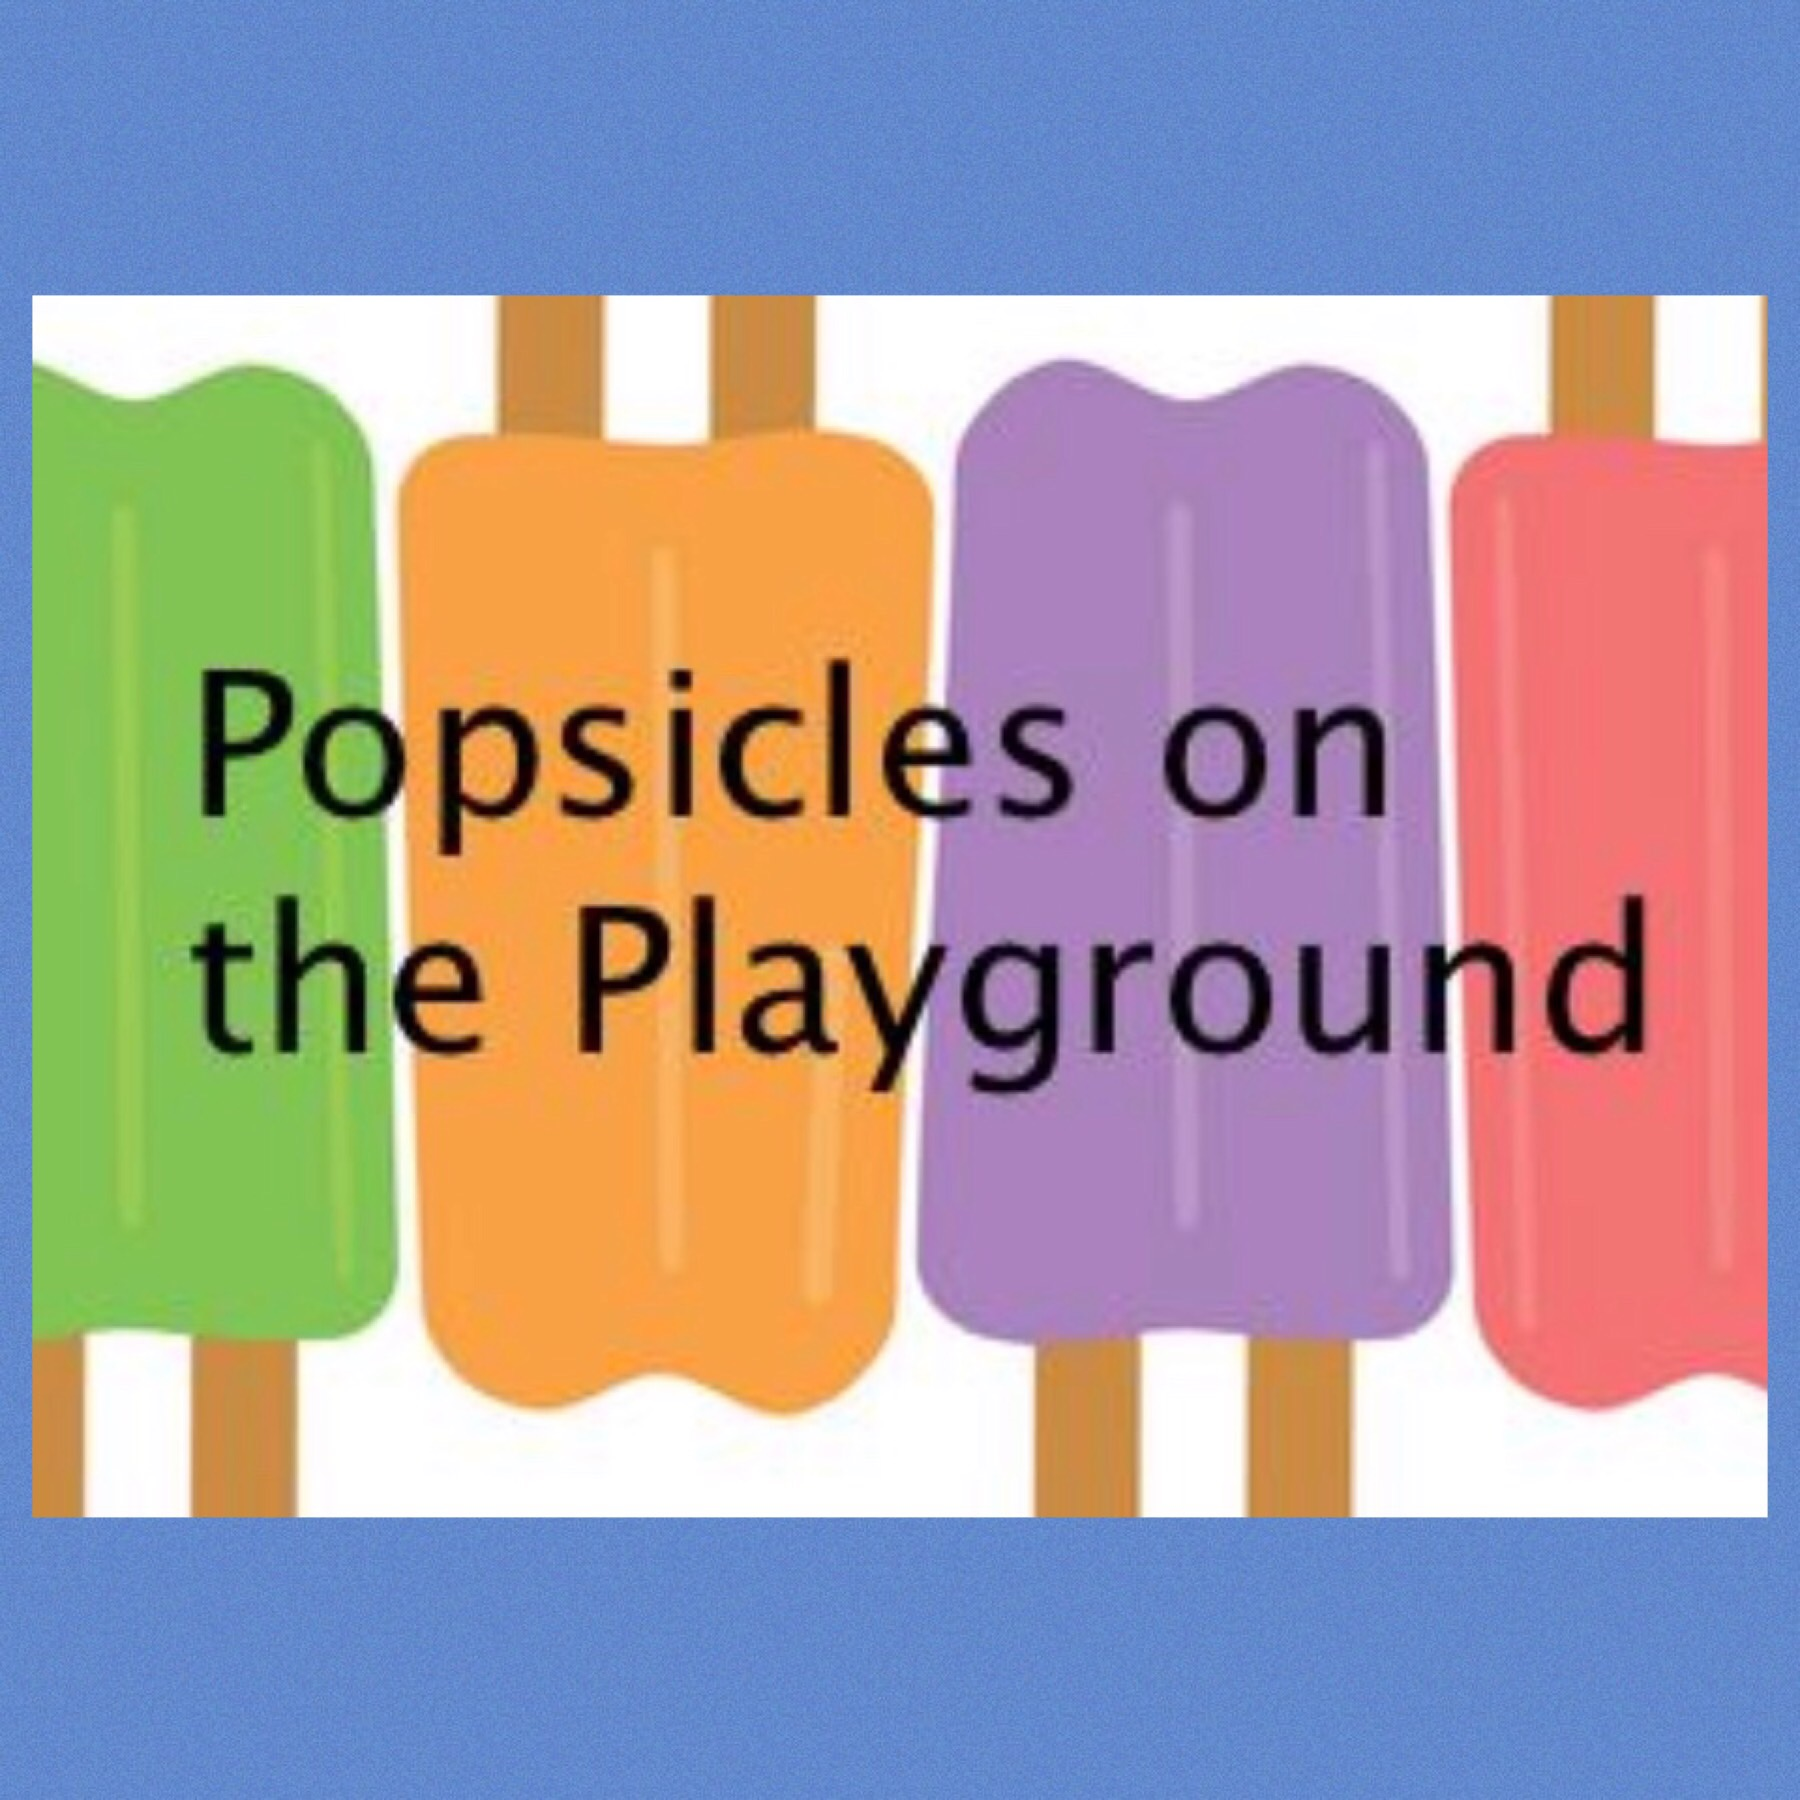 Popsicles on the Playground.JPG